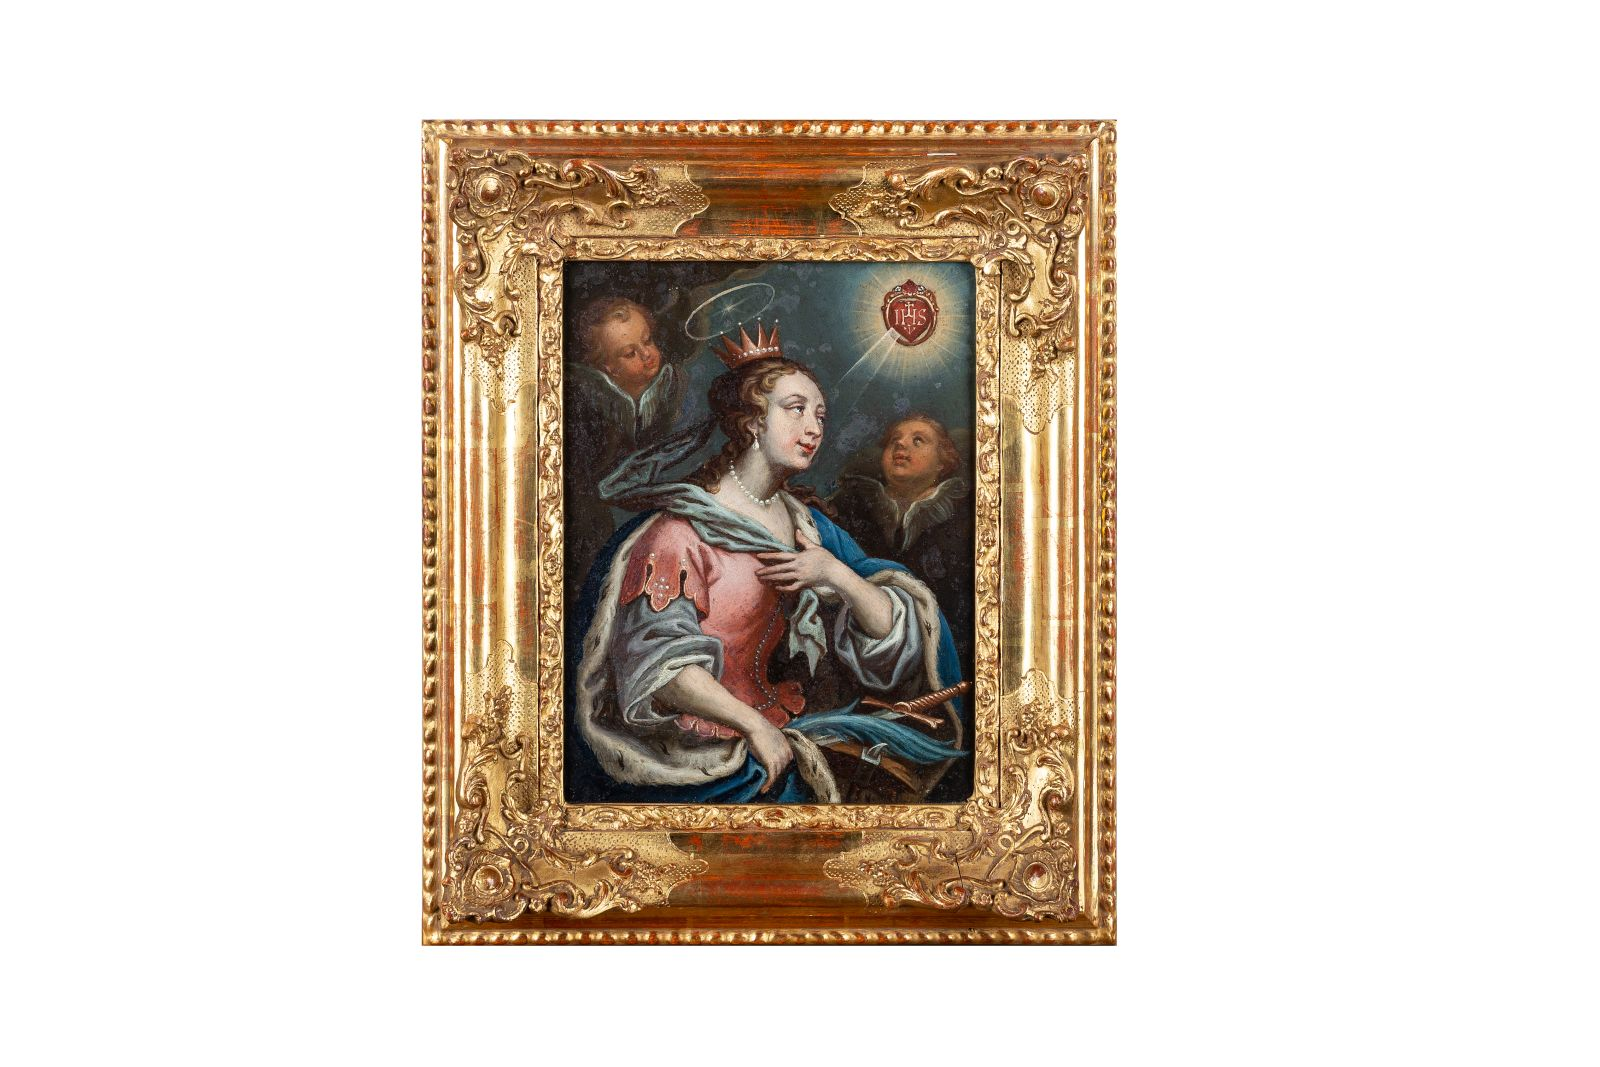 #129 Queen of Heaven wreathed by angels | Image